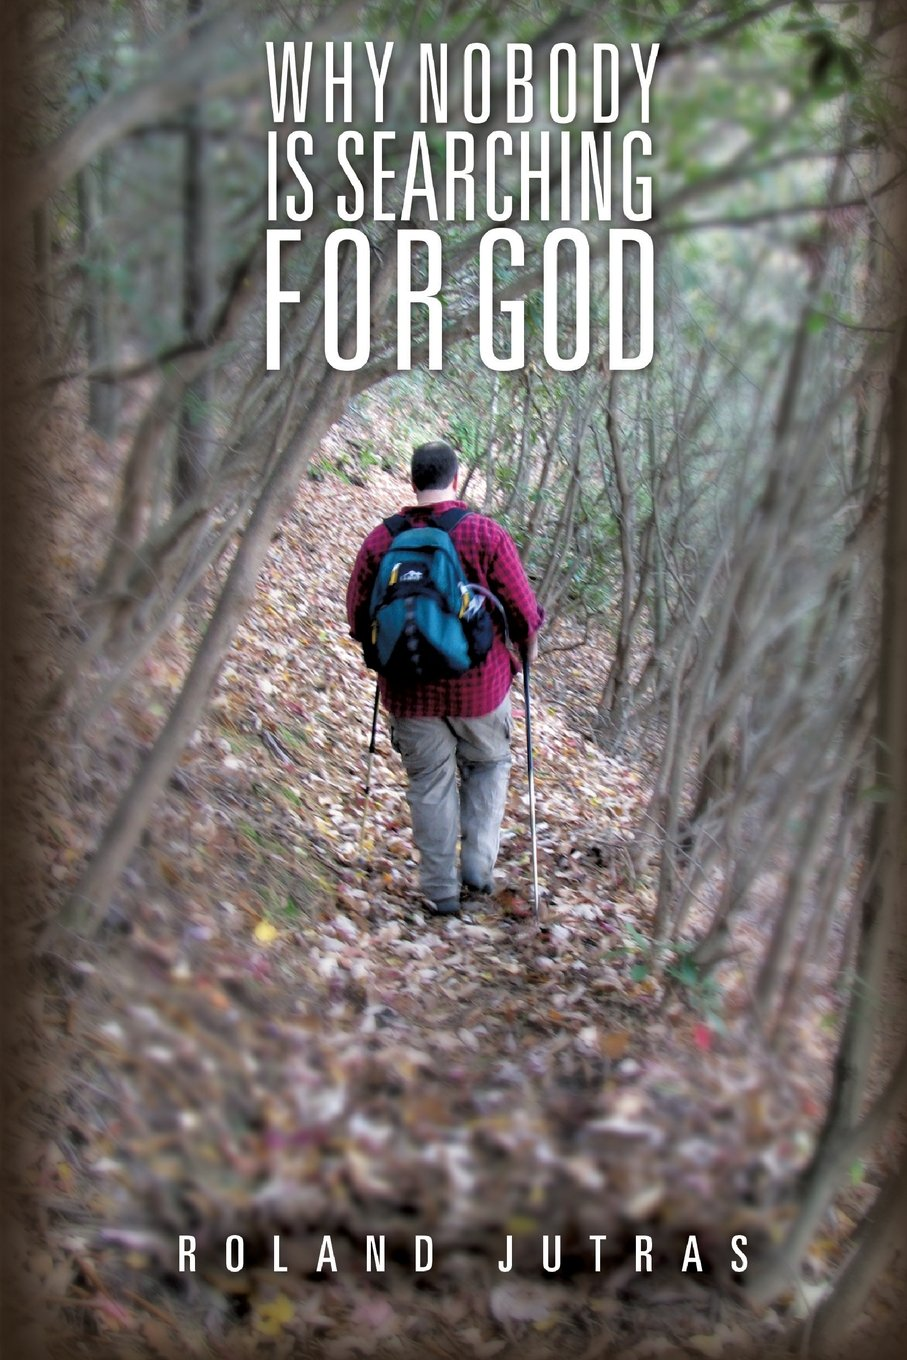 Why Nobody Is Searching for God pdf